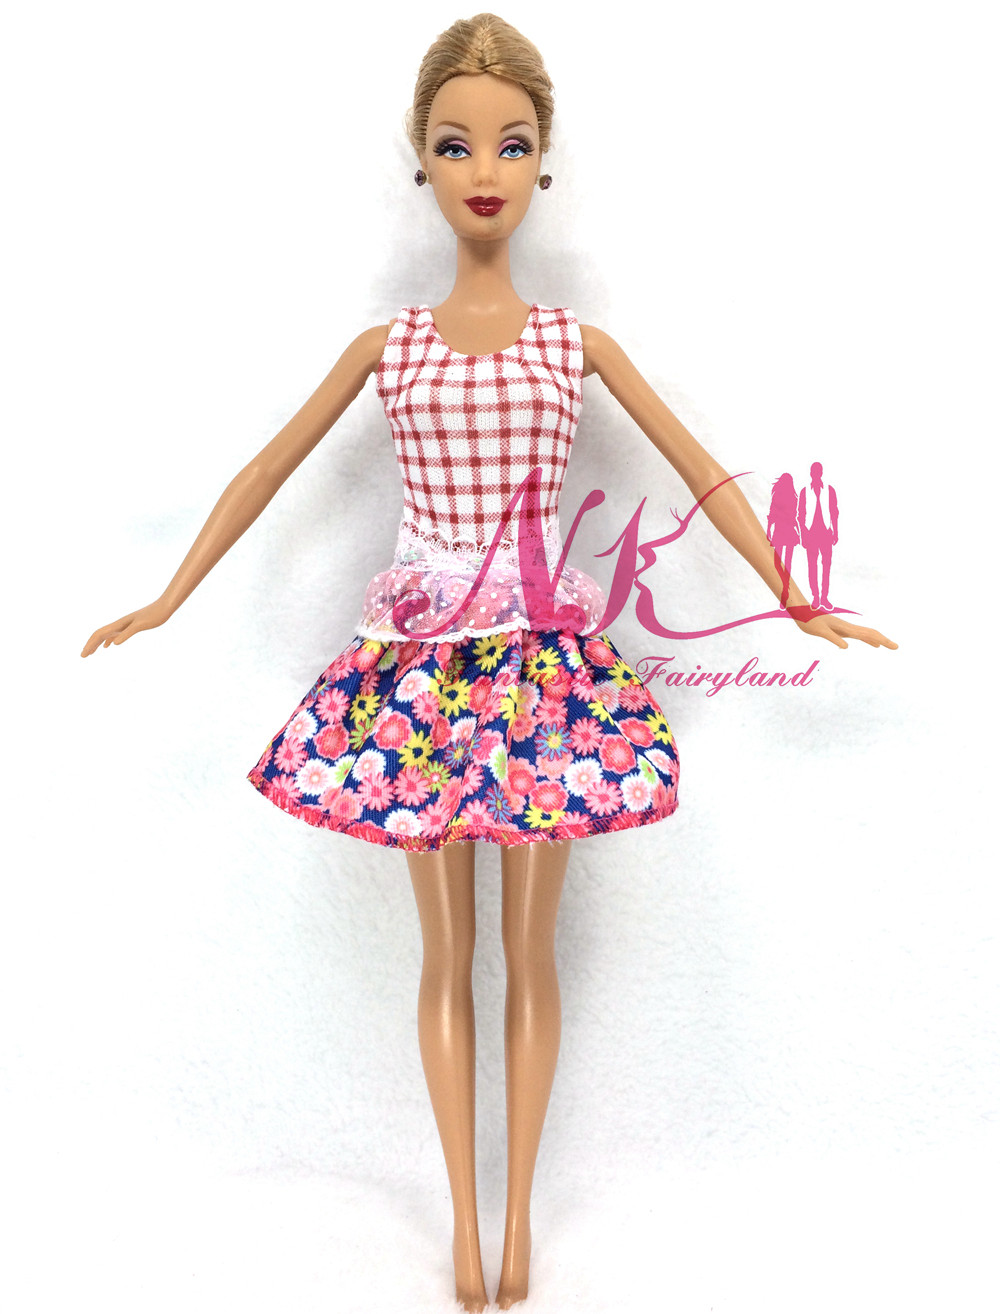 NK 2016 Newest Doll Dress Beautiful Handmade Party ClothesTop Fashion Dress For Barbie Noble Doll Best Child Girls'Gift 035A